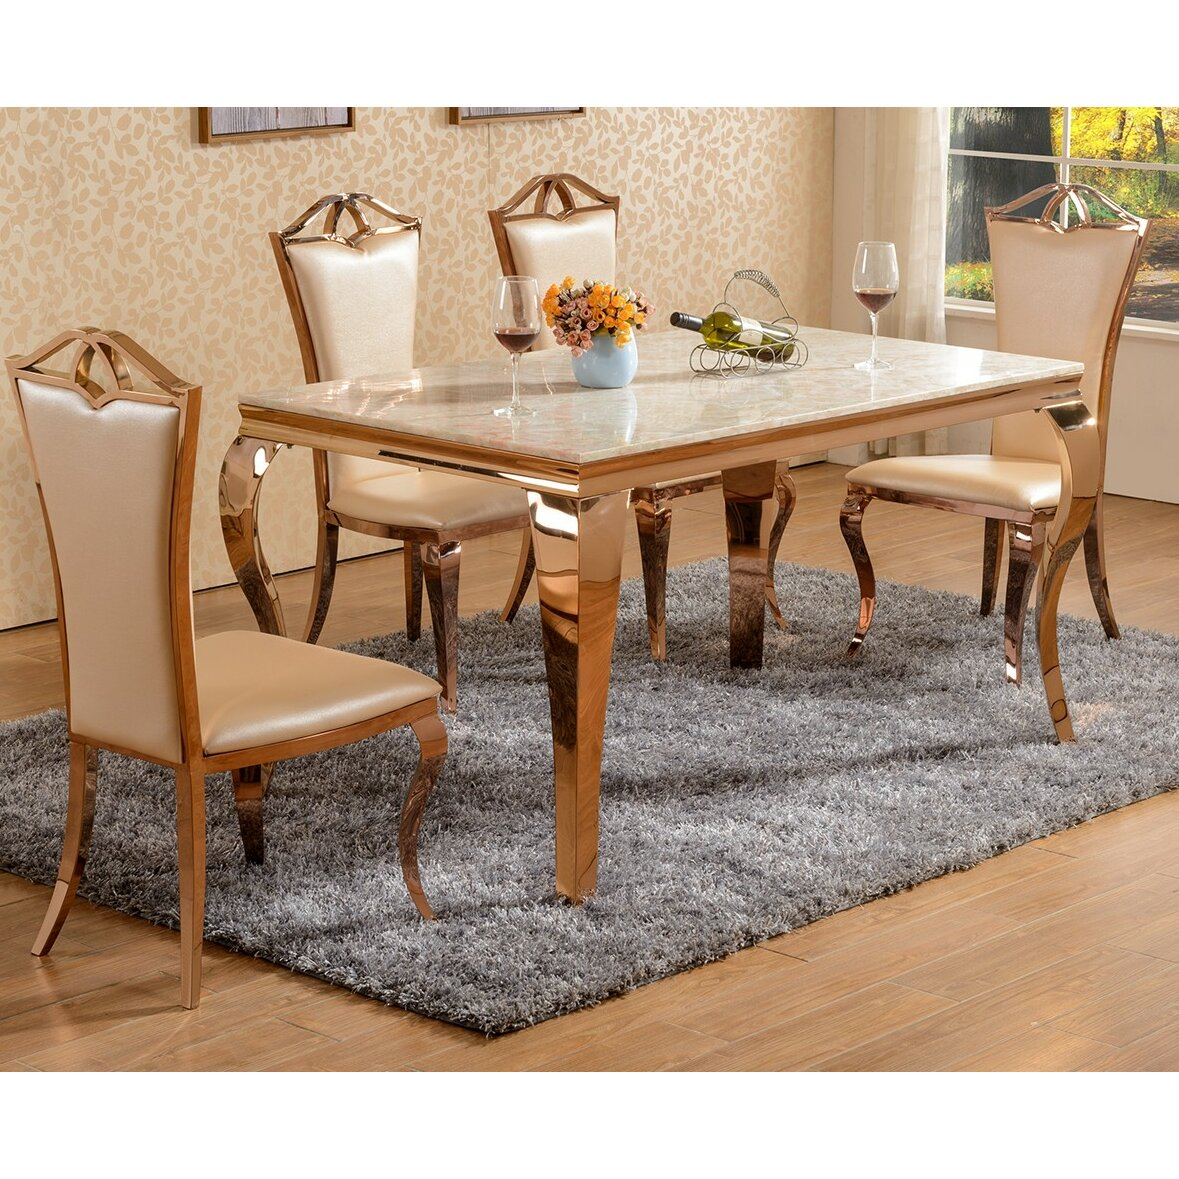 Derry 39 s julia dining table and 6 chairs wayfair uk for Wayfair furniture dining tables